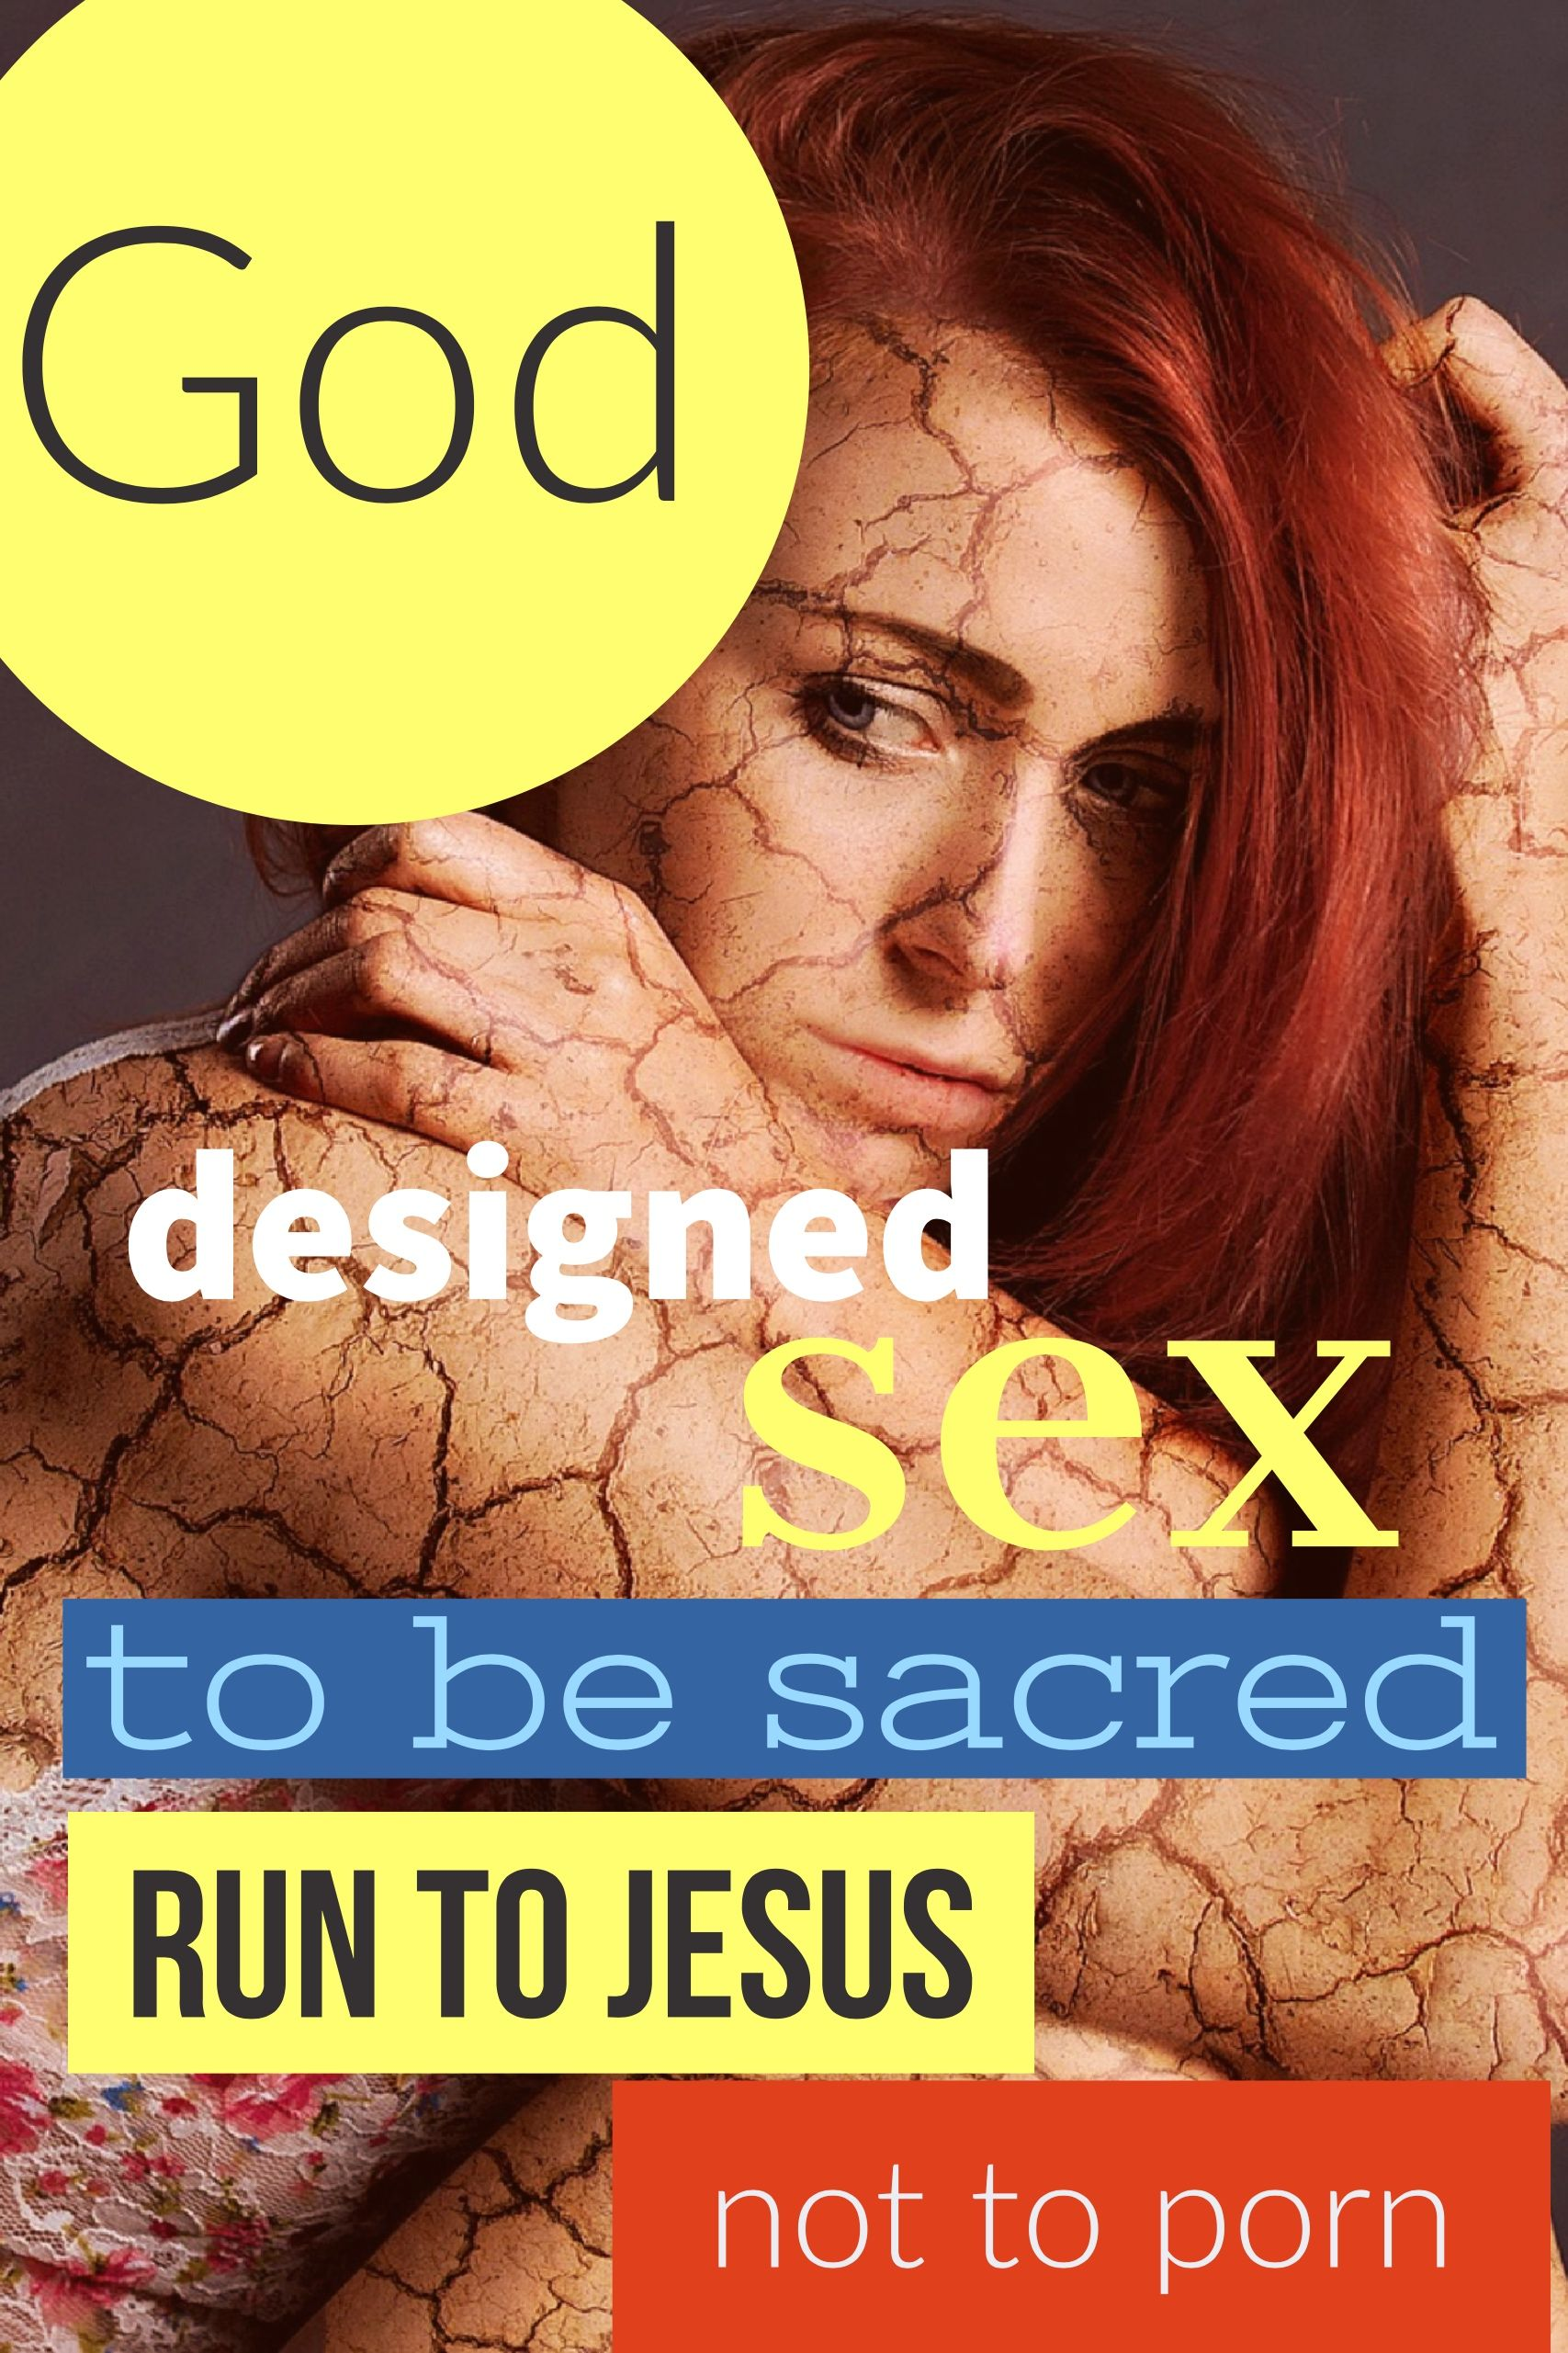 God designed sex to be sacred. Run to Jesus, not to porn ...